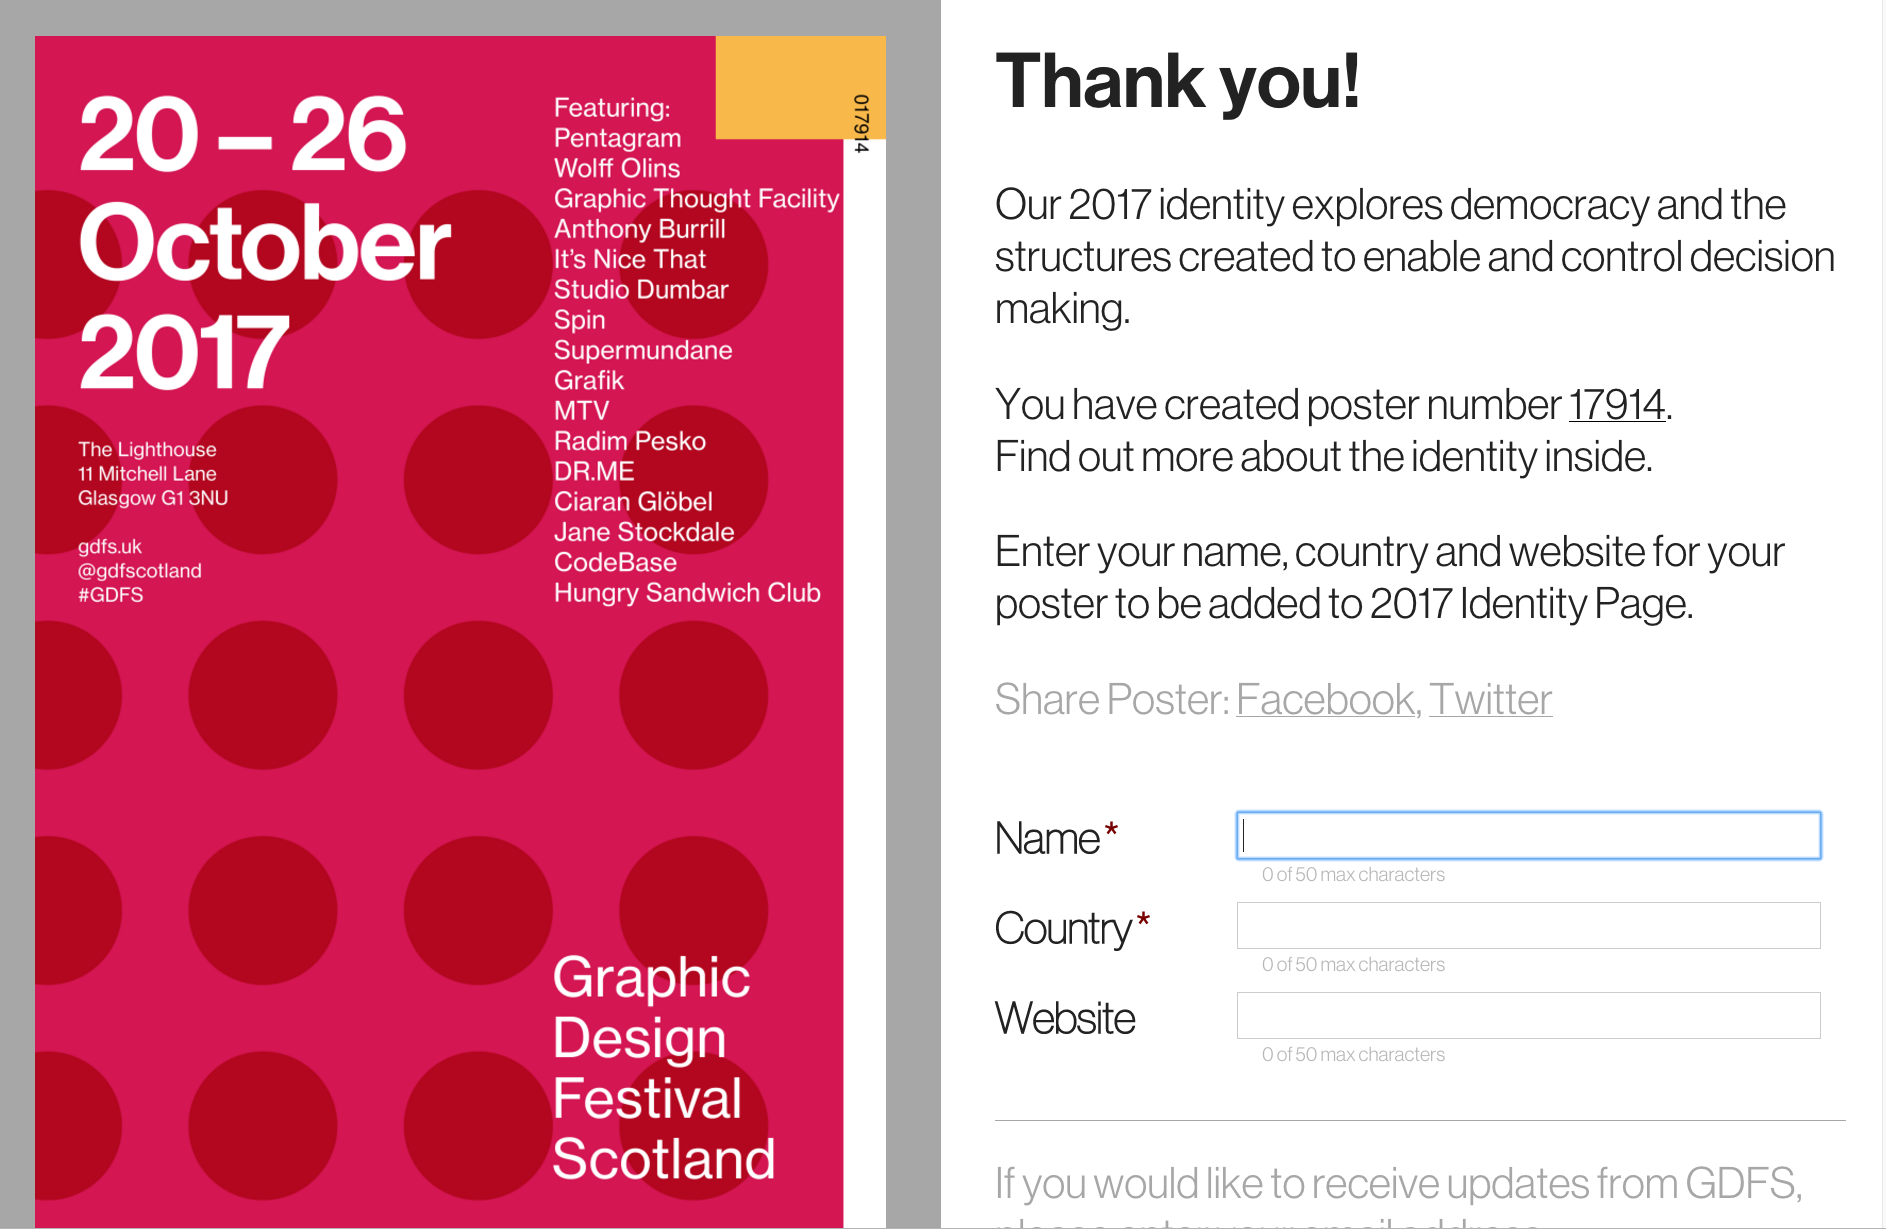 Poster design generator - The Gdfs Website A Poster Generator Tool Allows You To Create A Poster For Gdfs By Making A Series Of Snap Decisions